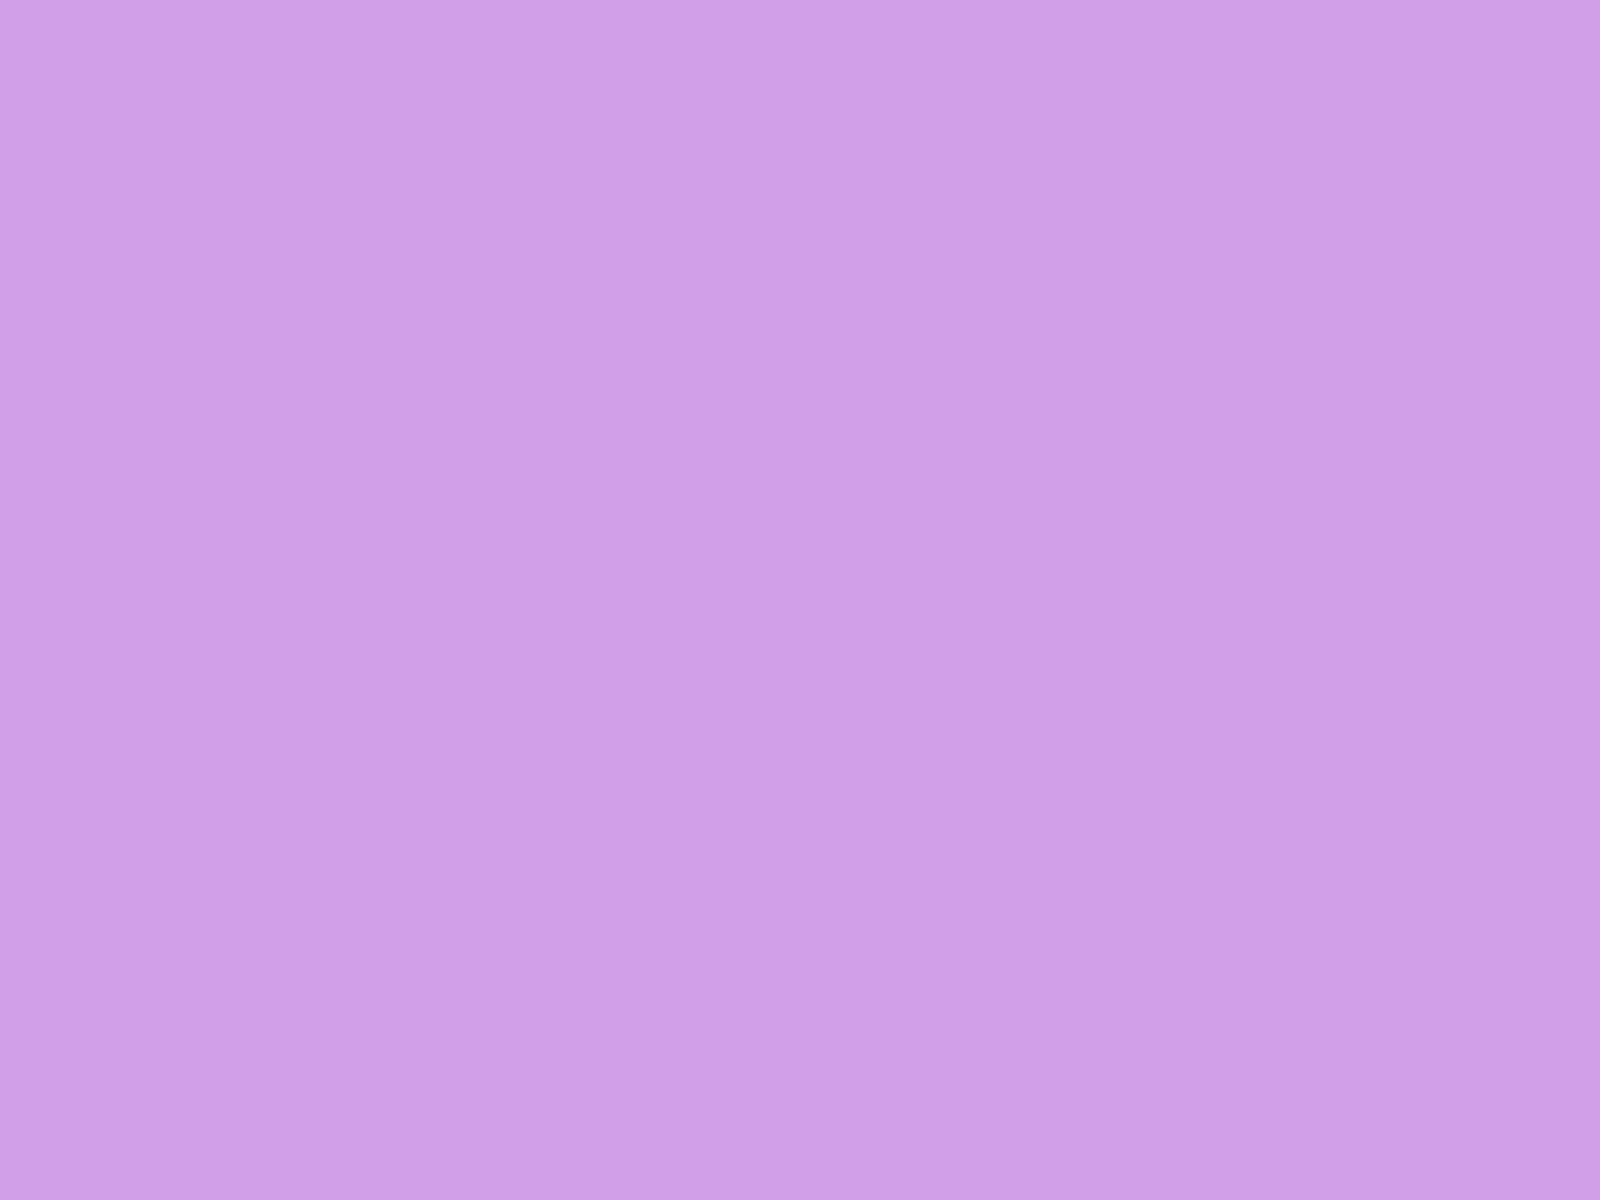 1600x1200 Bright Ube Solid Color Background